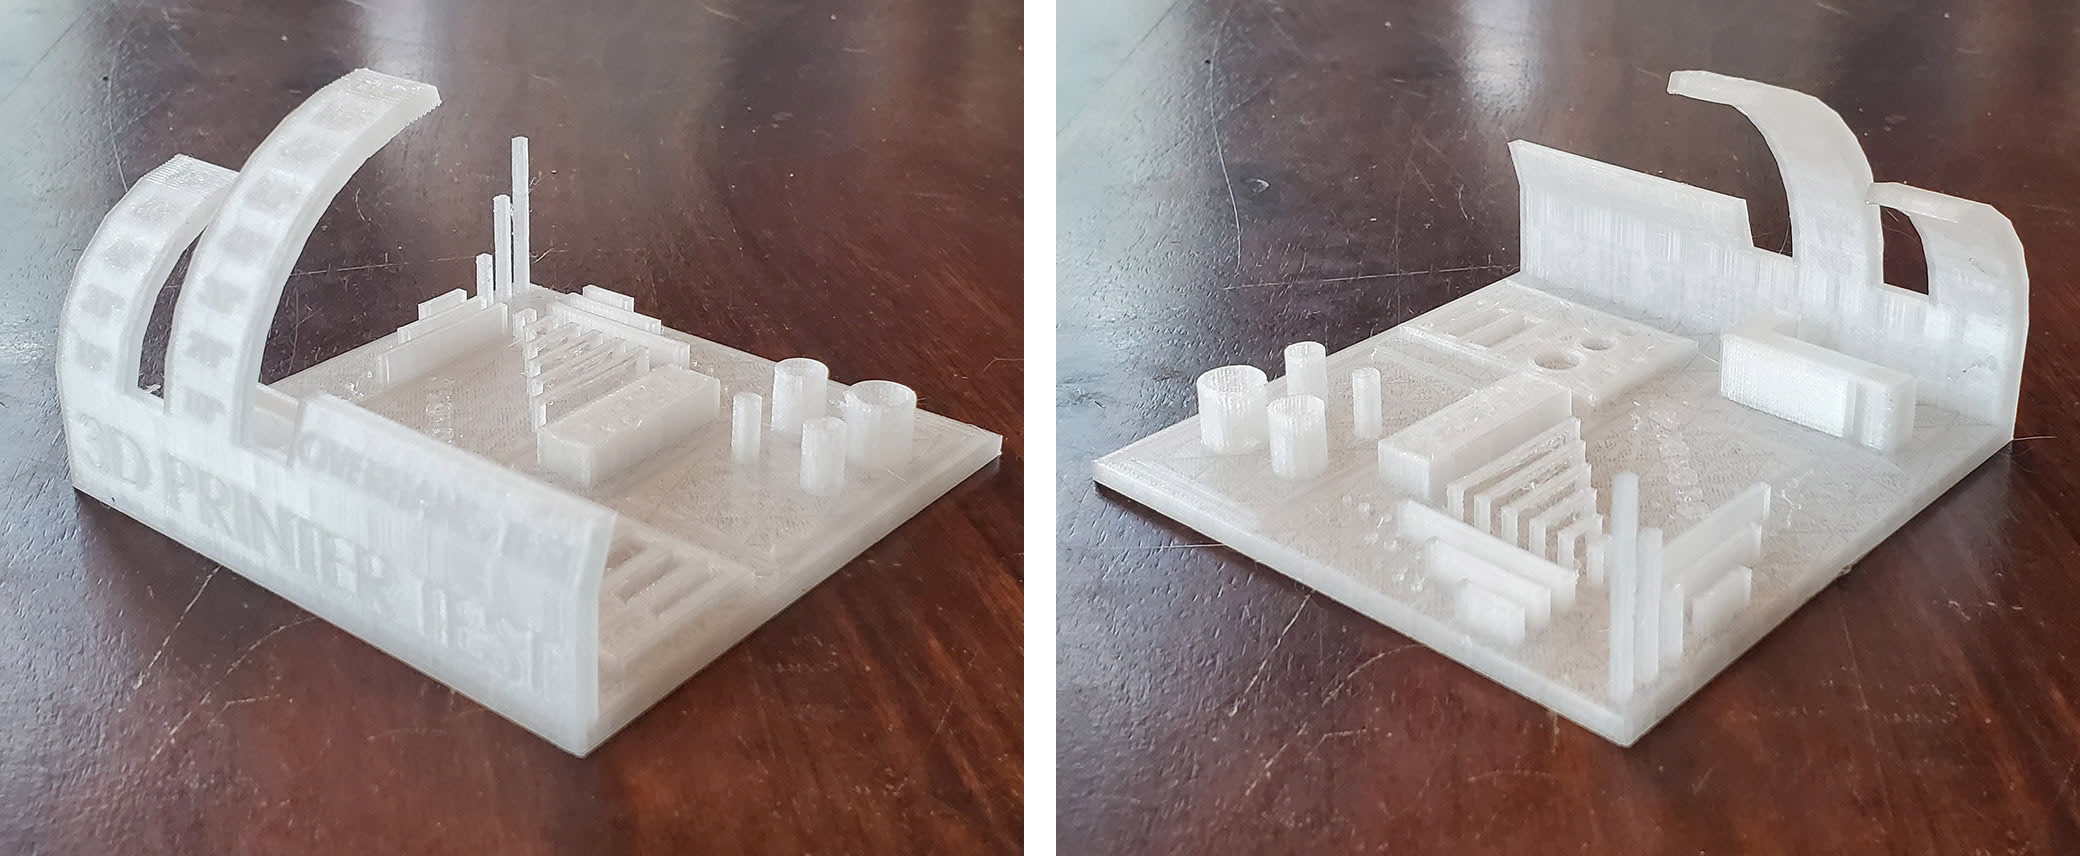 PETG all in one 3d printer test